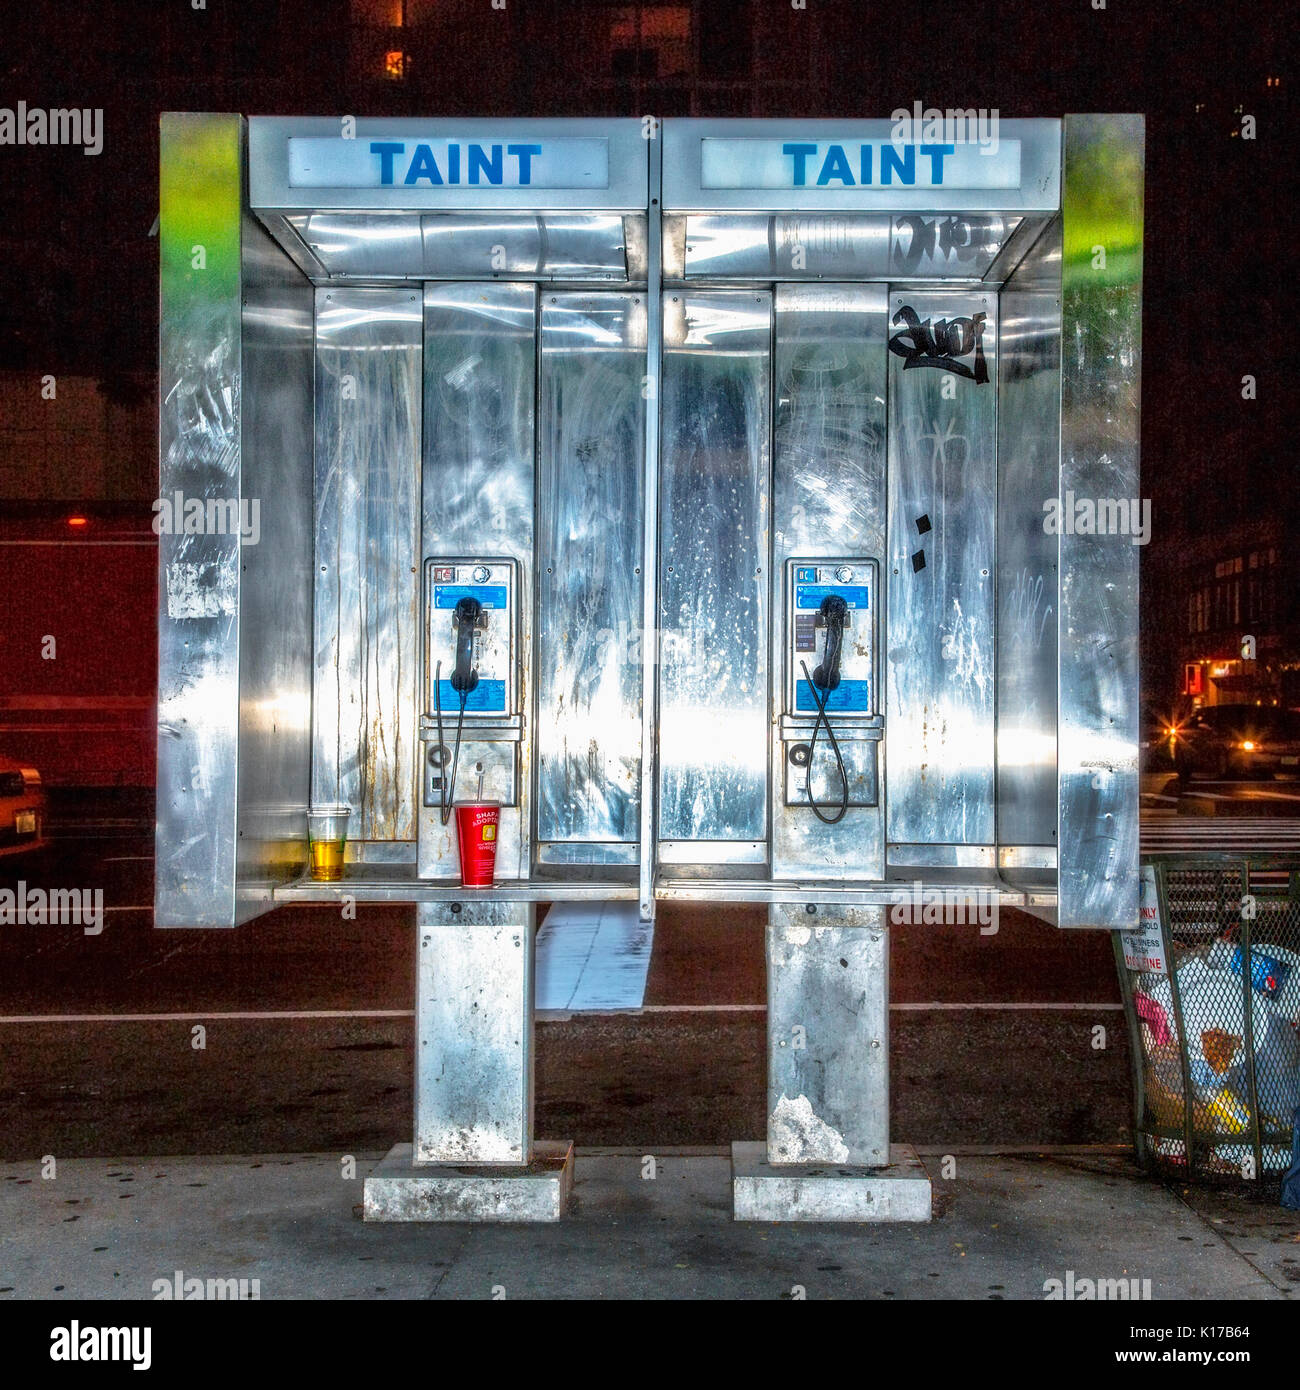 Telephone booths at night - Stock Image